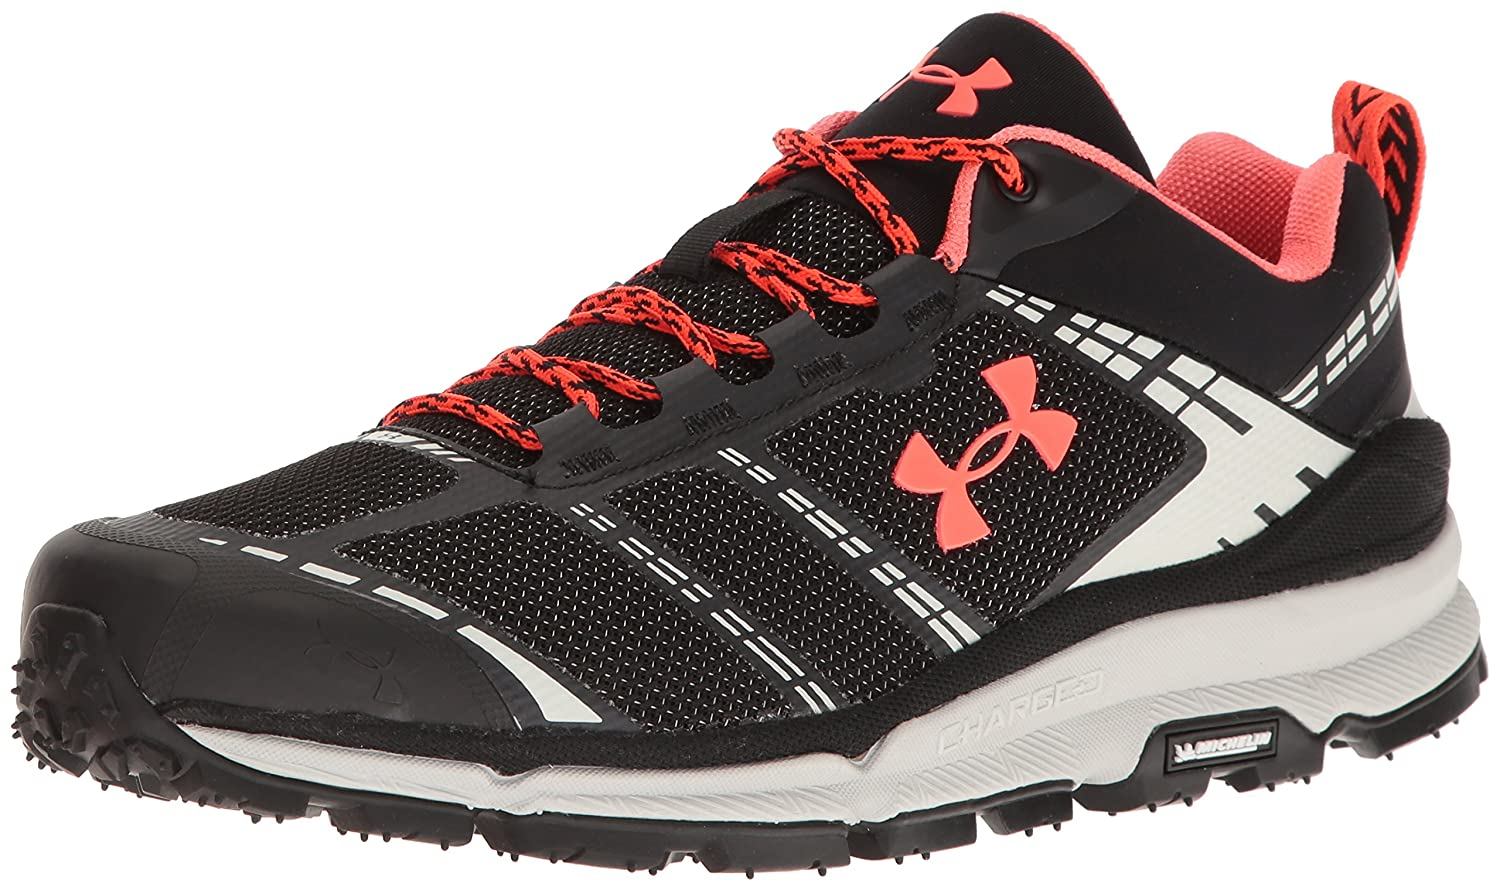 Under Armour Men's Verge Low Hiking Boot B01GPDXGZG 12.5 M US|Black (001)/Elemental